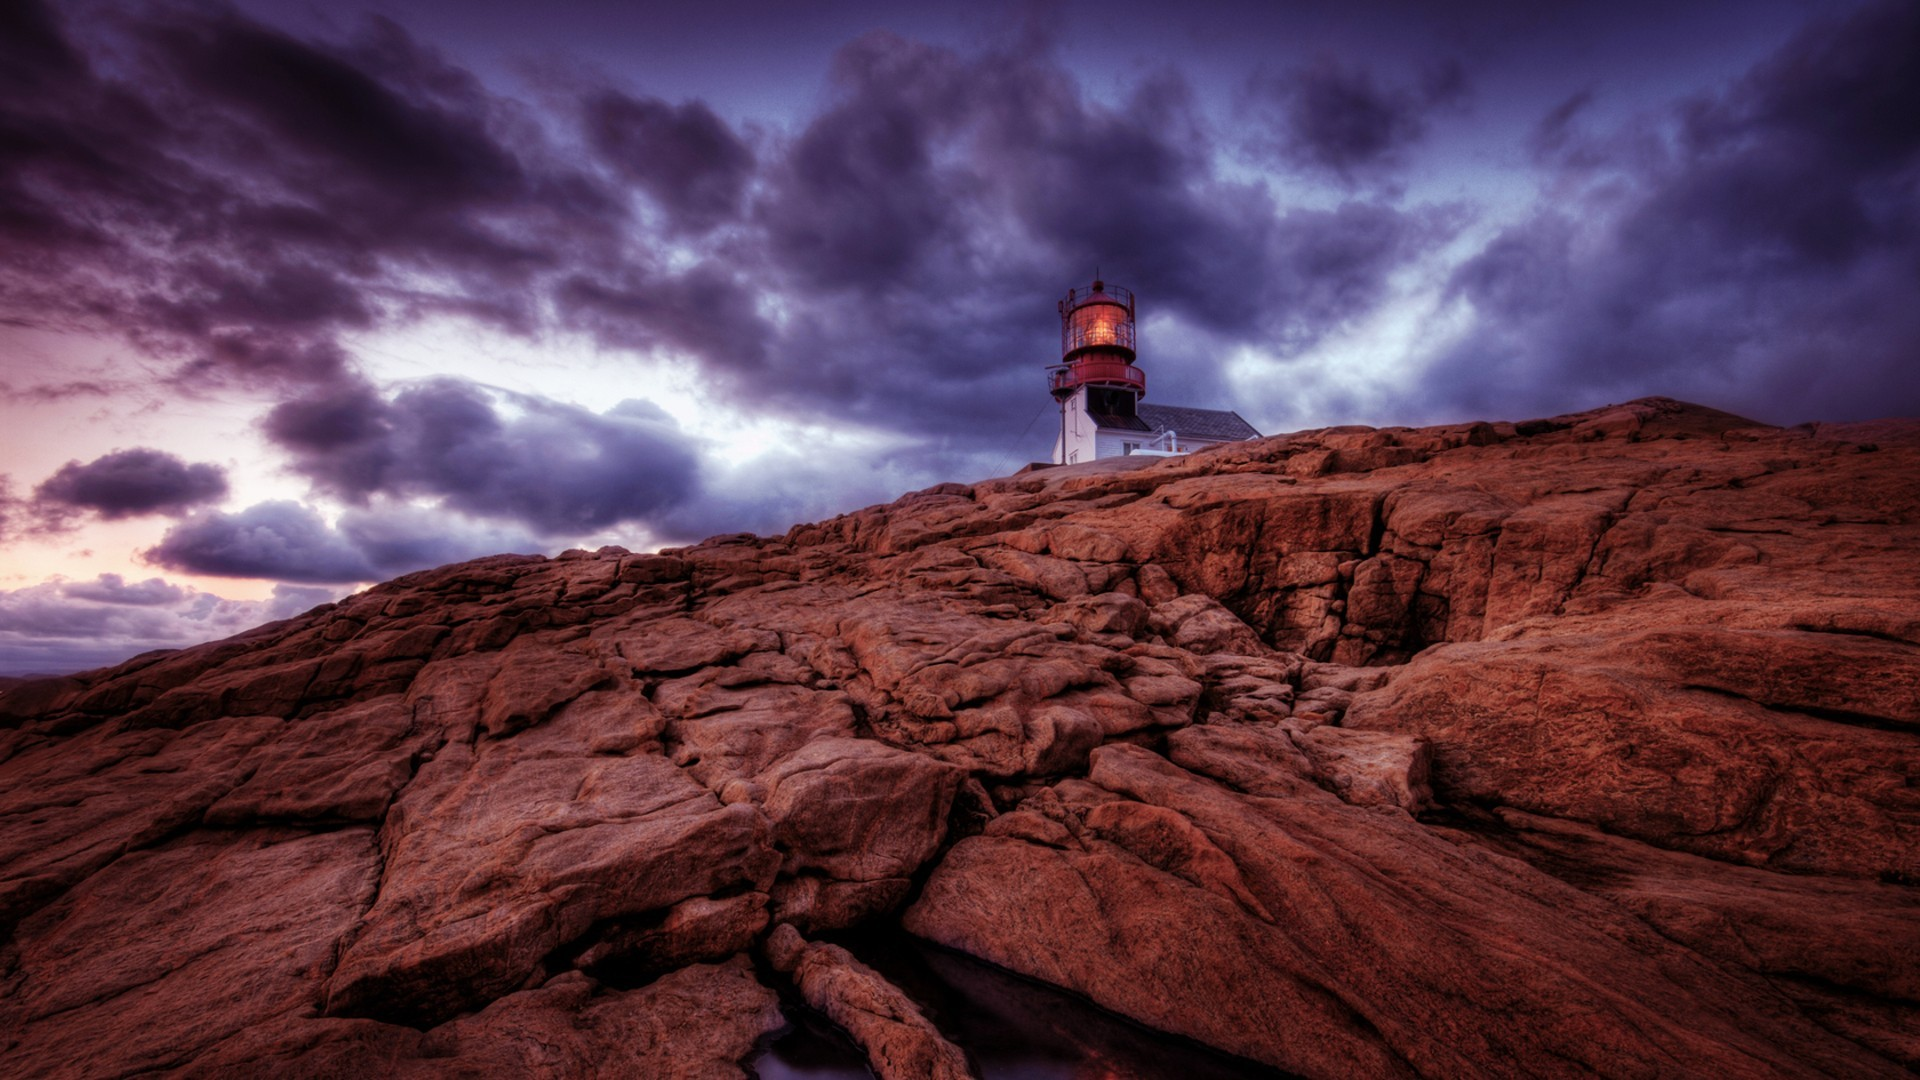 fantastic lighthouse on a rocky cliff hdr wallpaper | allwallpaper